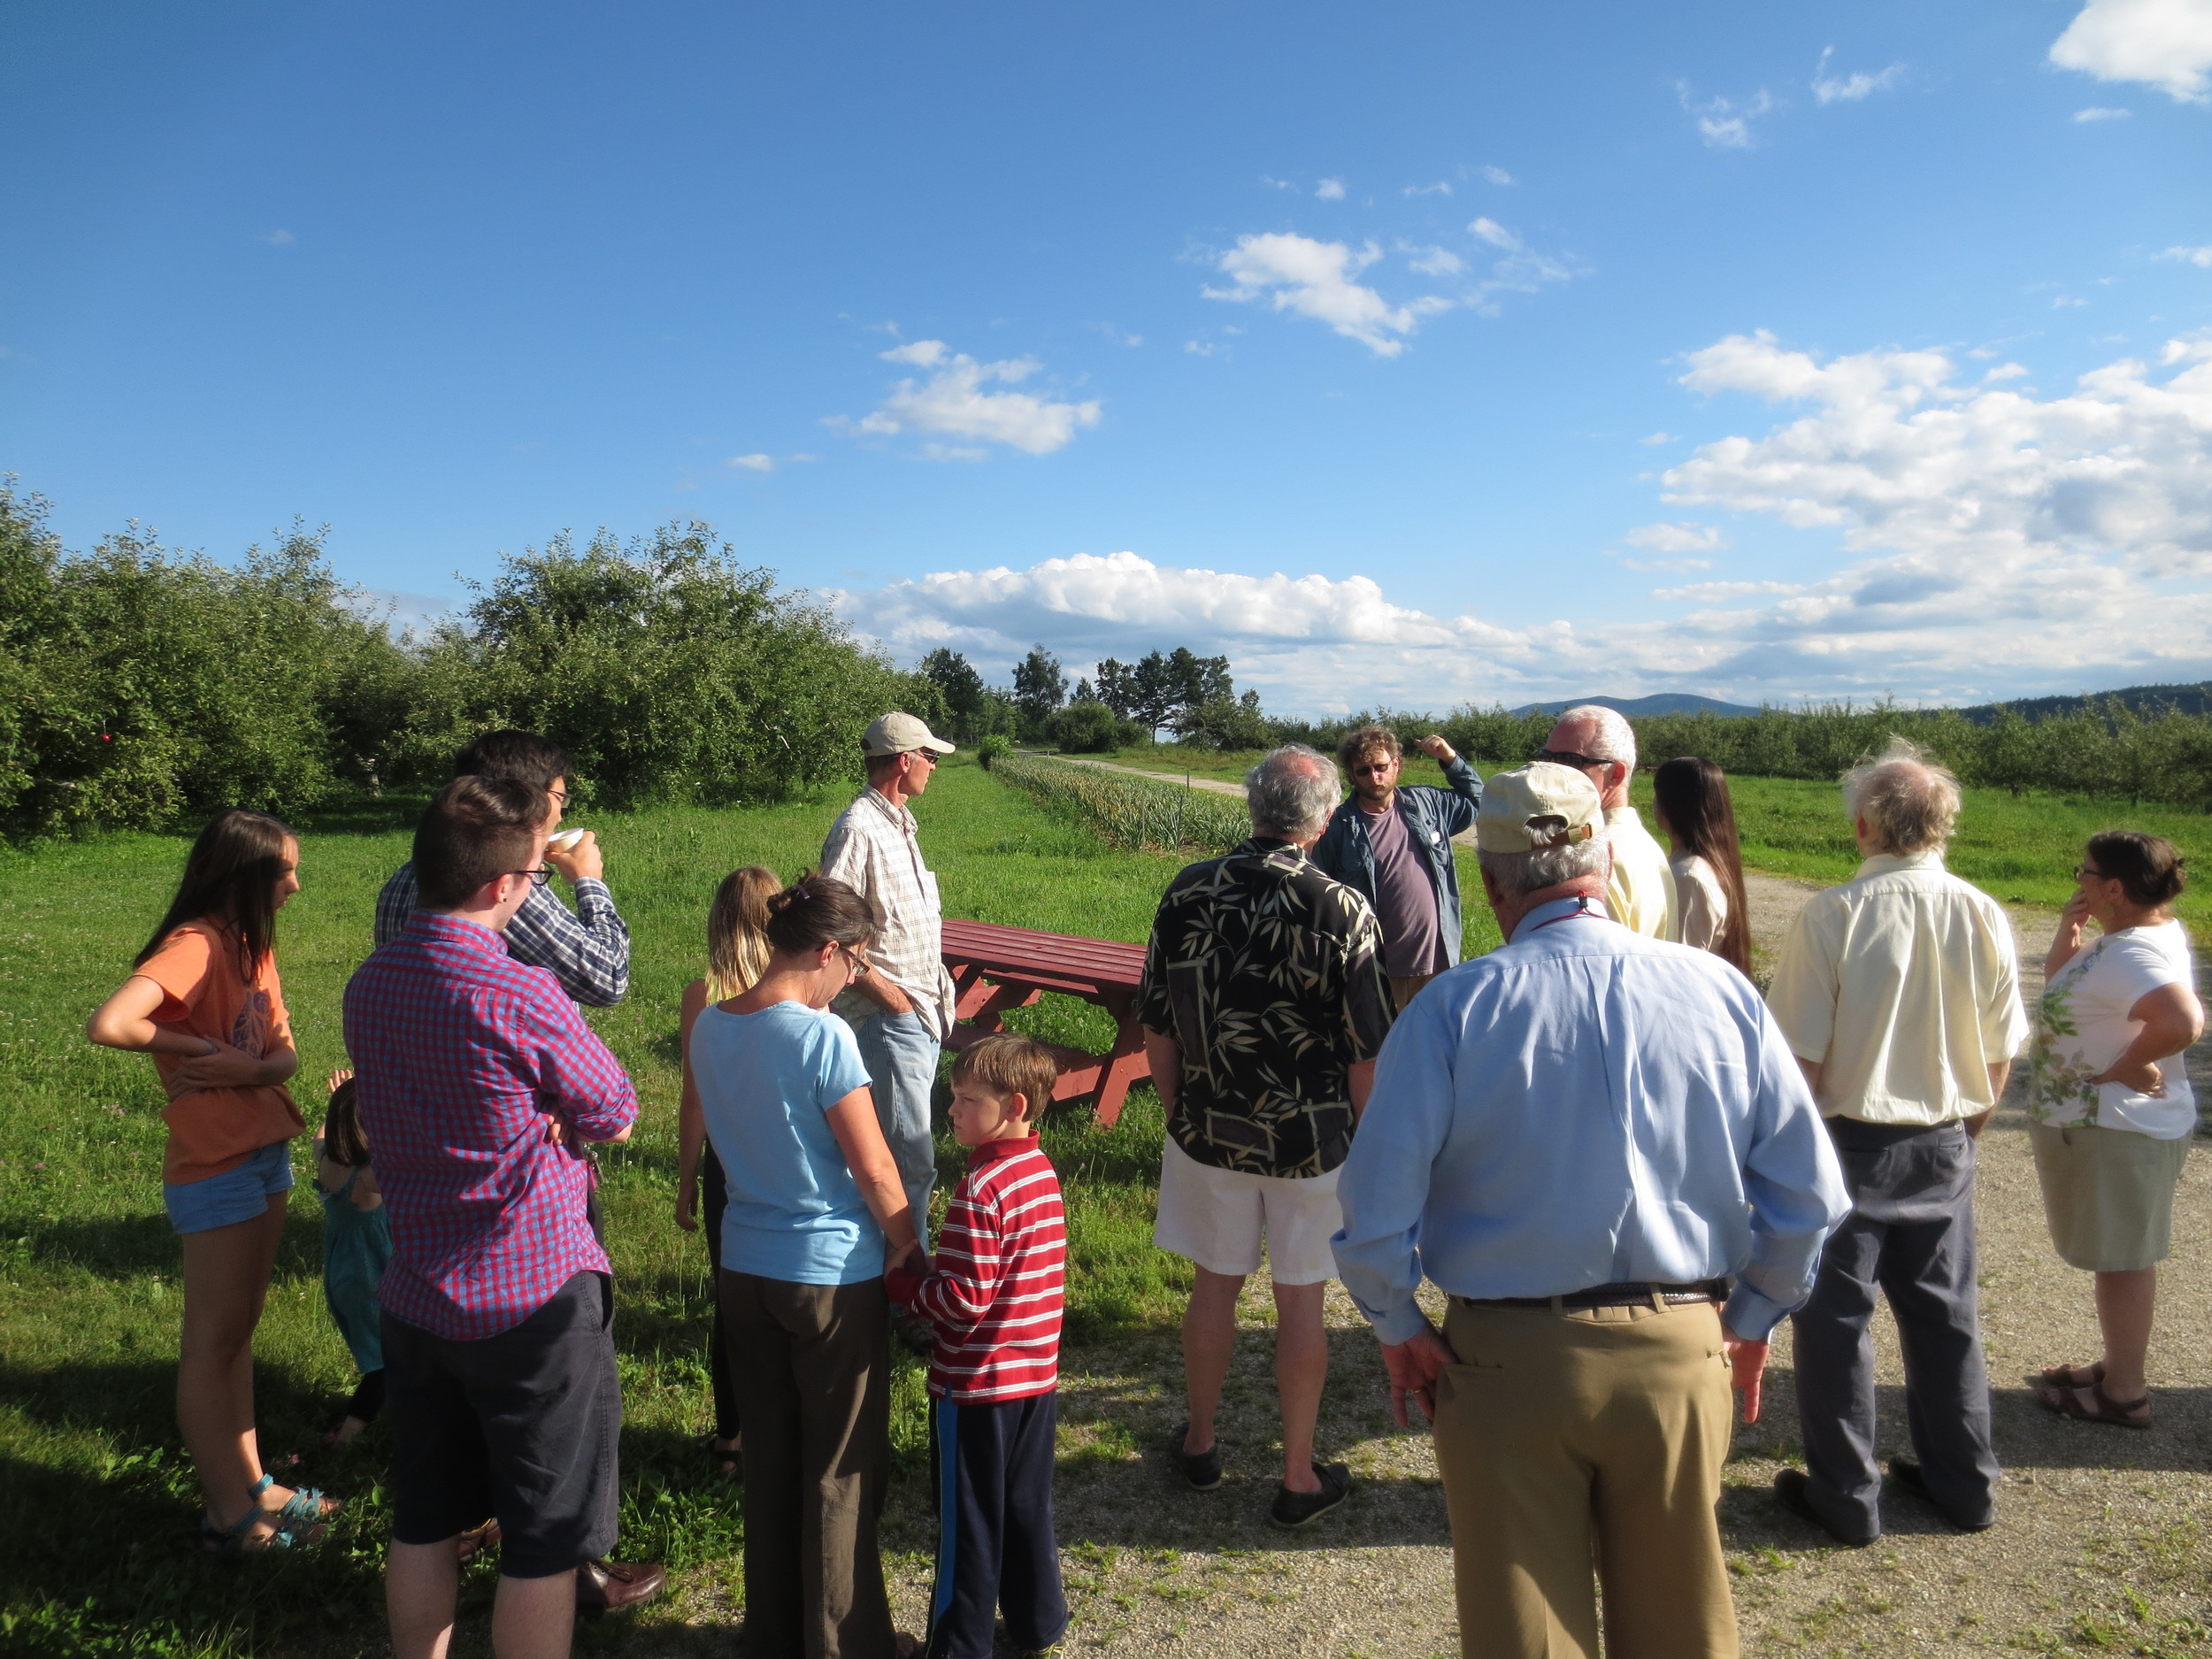 Come on up and learn about farming in Maine this Open Farm Day, Sunday July 26th 11am-3pm!